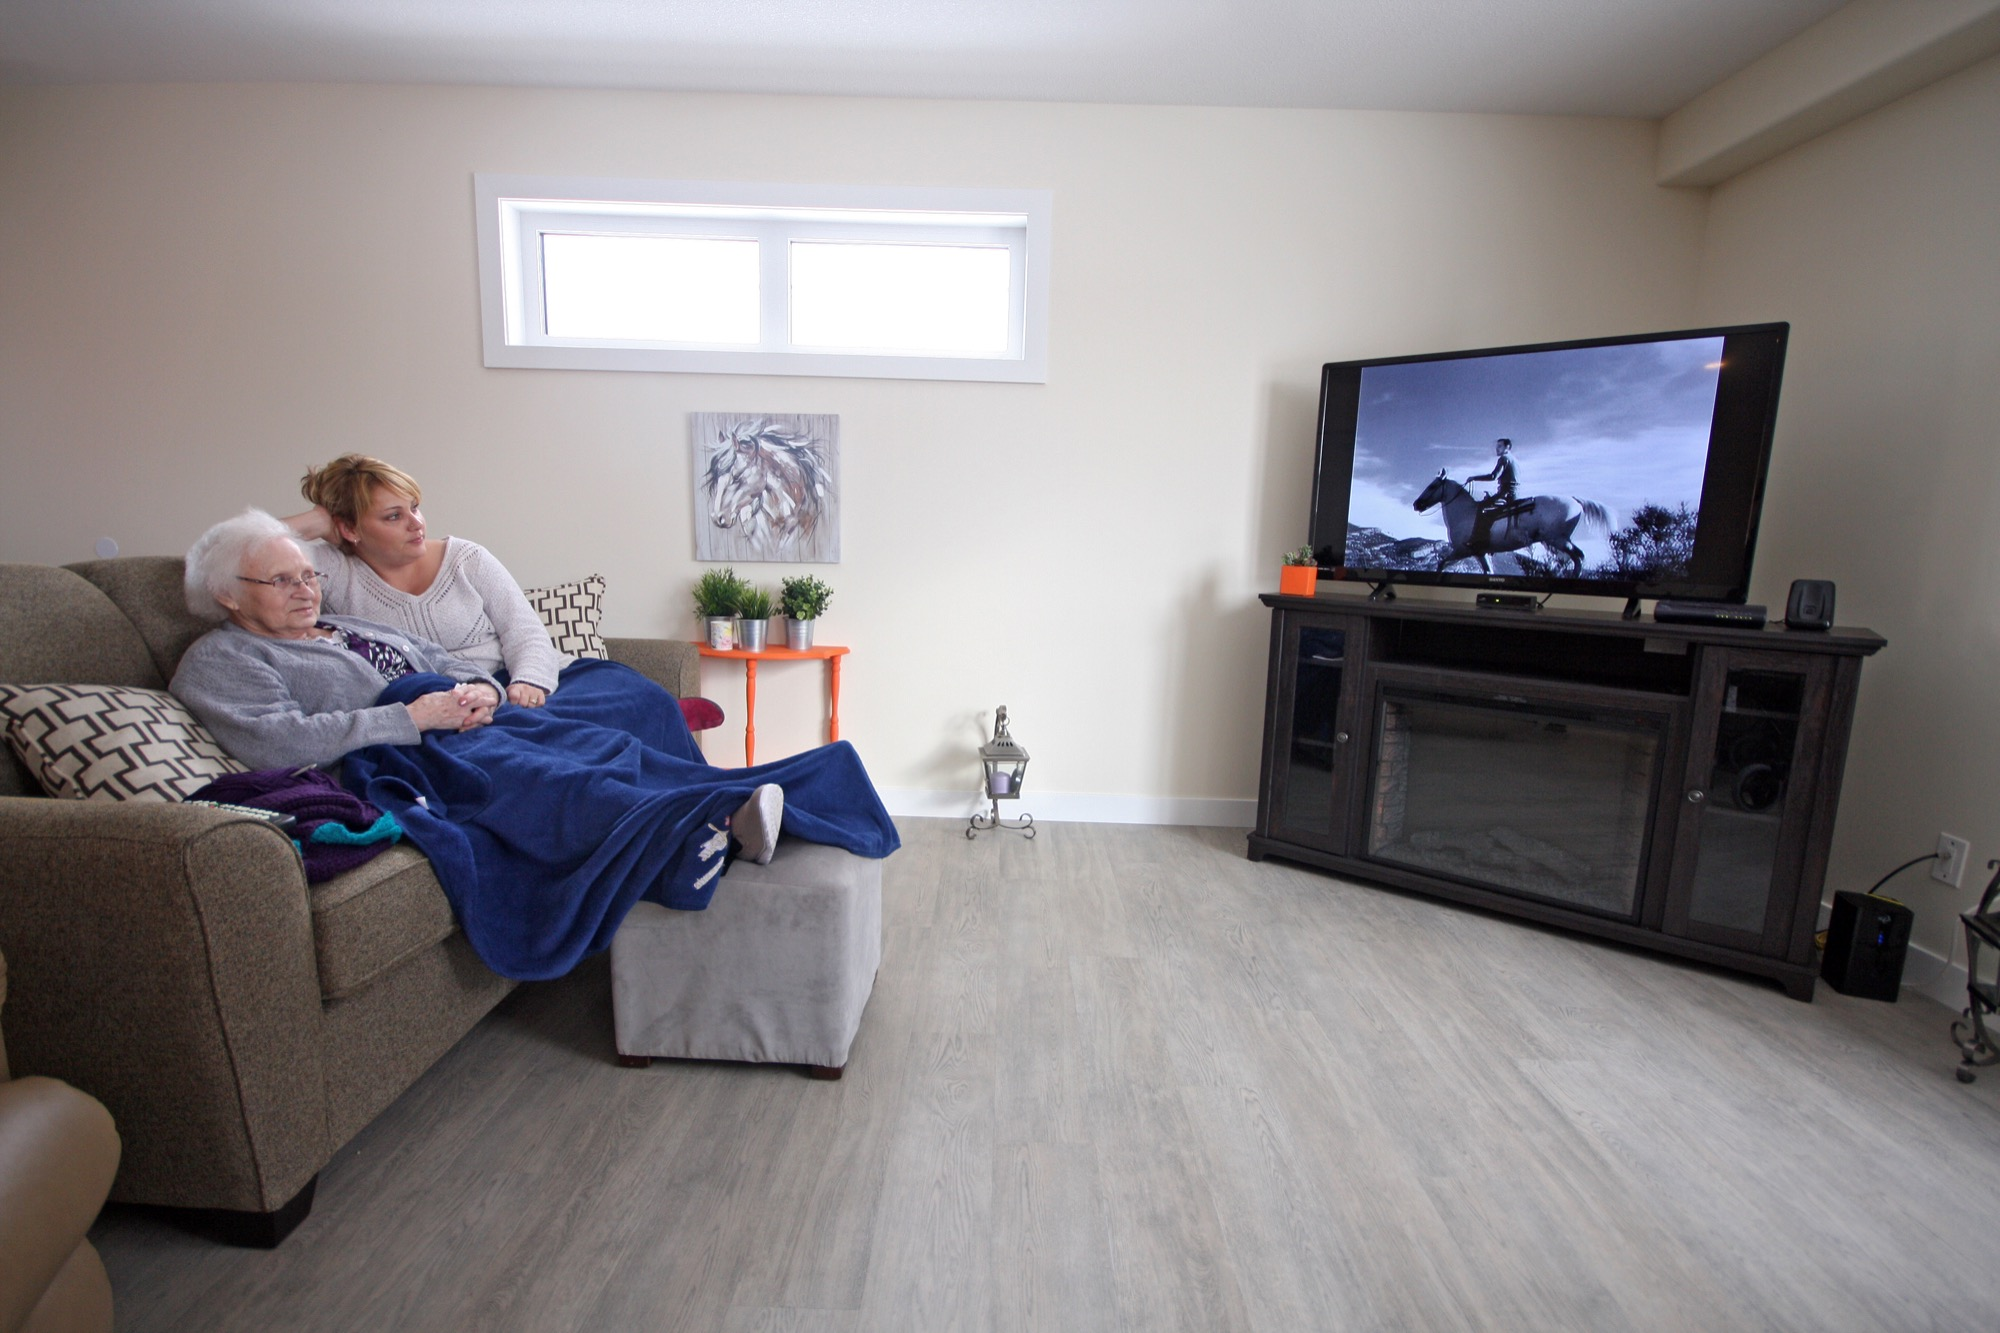 Daughter on Call seniors housing complex resident Ruth Molnar watches a black and white movie with health care aide Cori Behrman on Monday, a few days after the six-unit building opened.